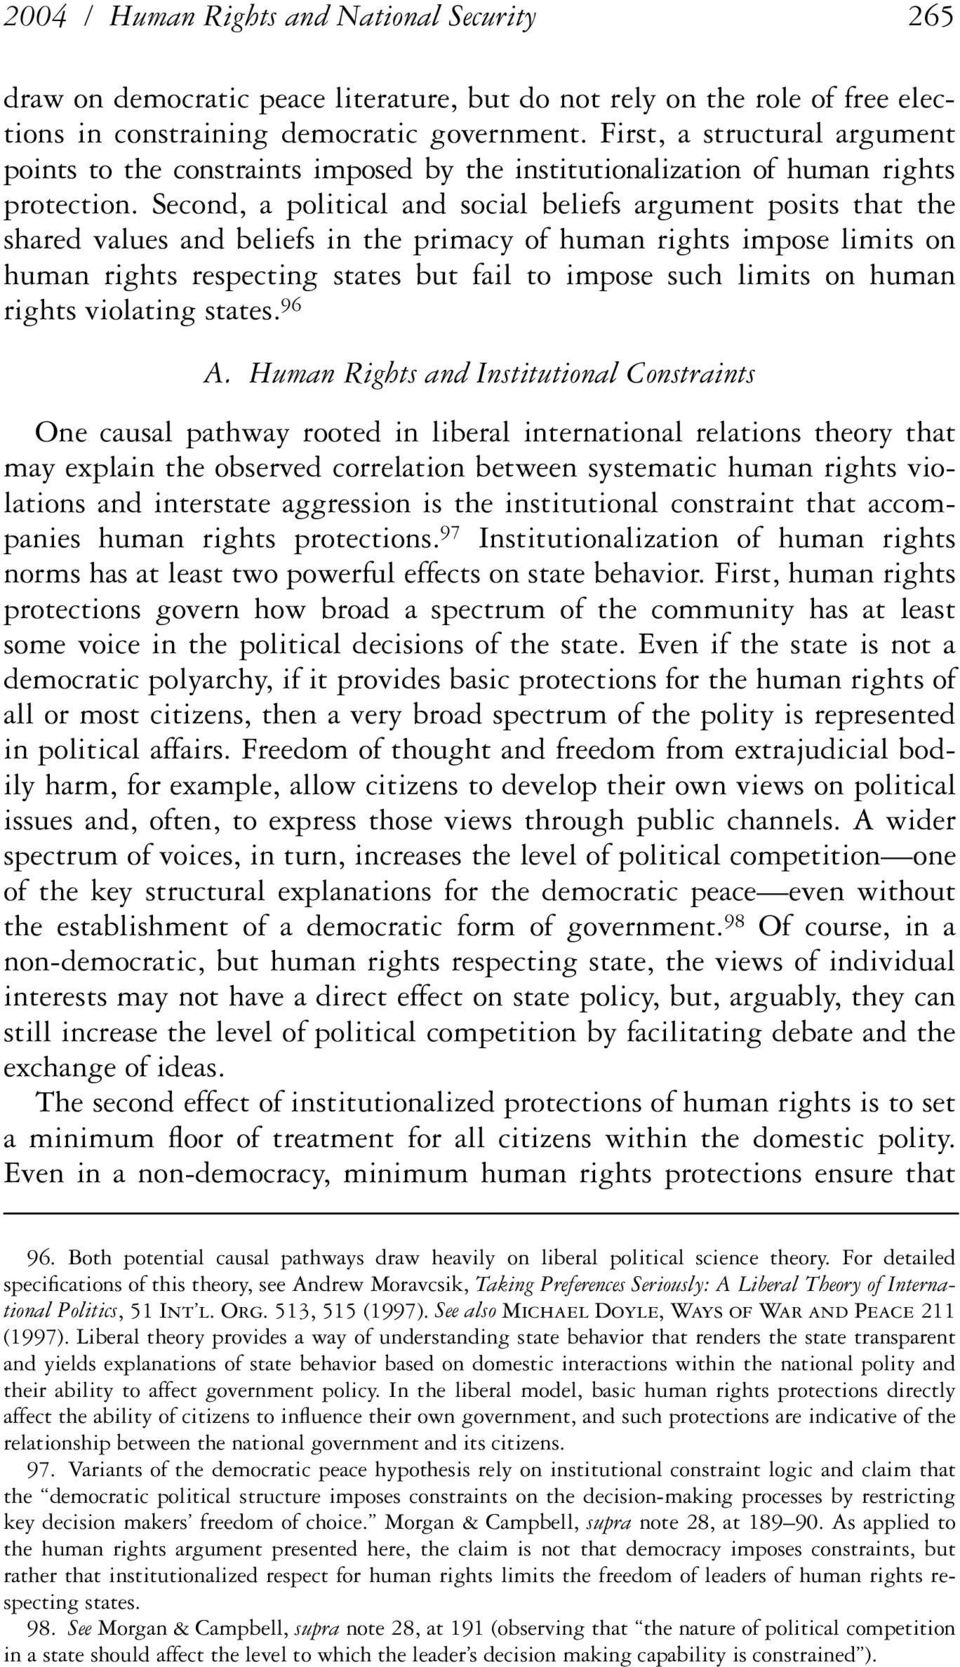 Second, a political and social beliefs argument posits that the shared values and beliefs in the primacy of human rights impose limits on human rights respecting states but fail to impose such limits